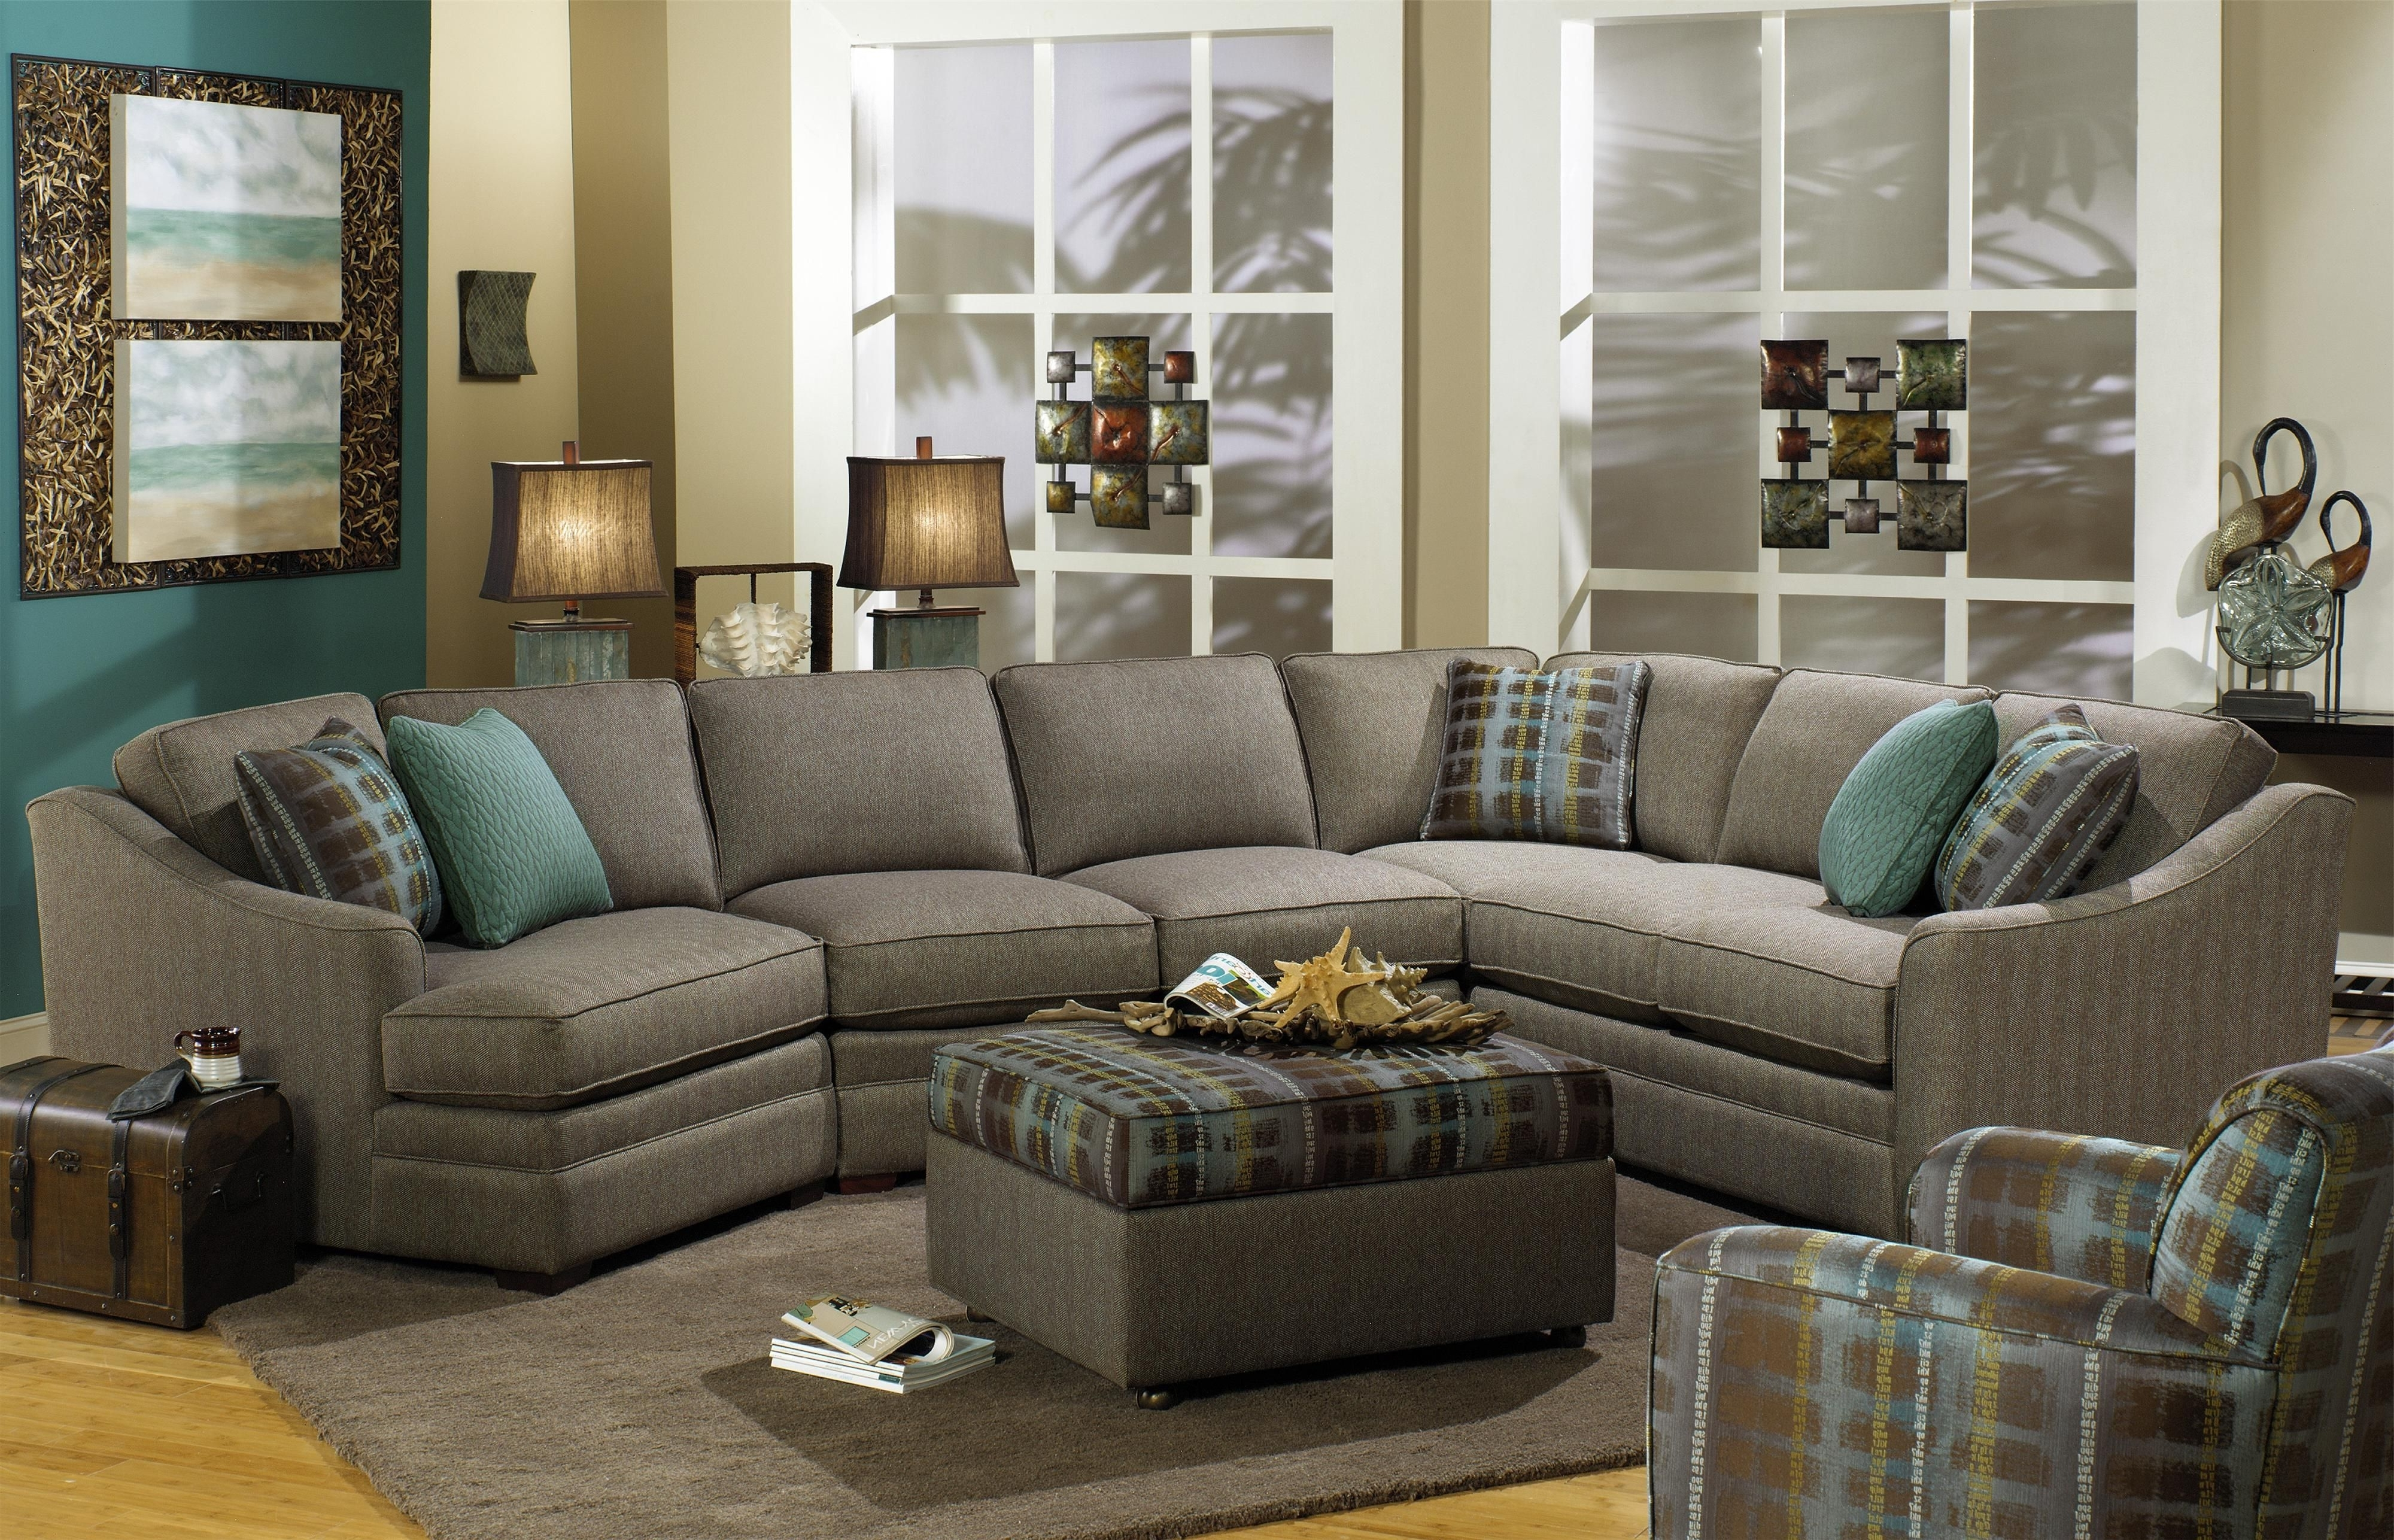 Murfreesboro Tn Sectional Sofas For Fashionable F9 Custom Collection Customizable 3 Piece Sectional With Laf (View 5 of 20)